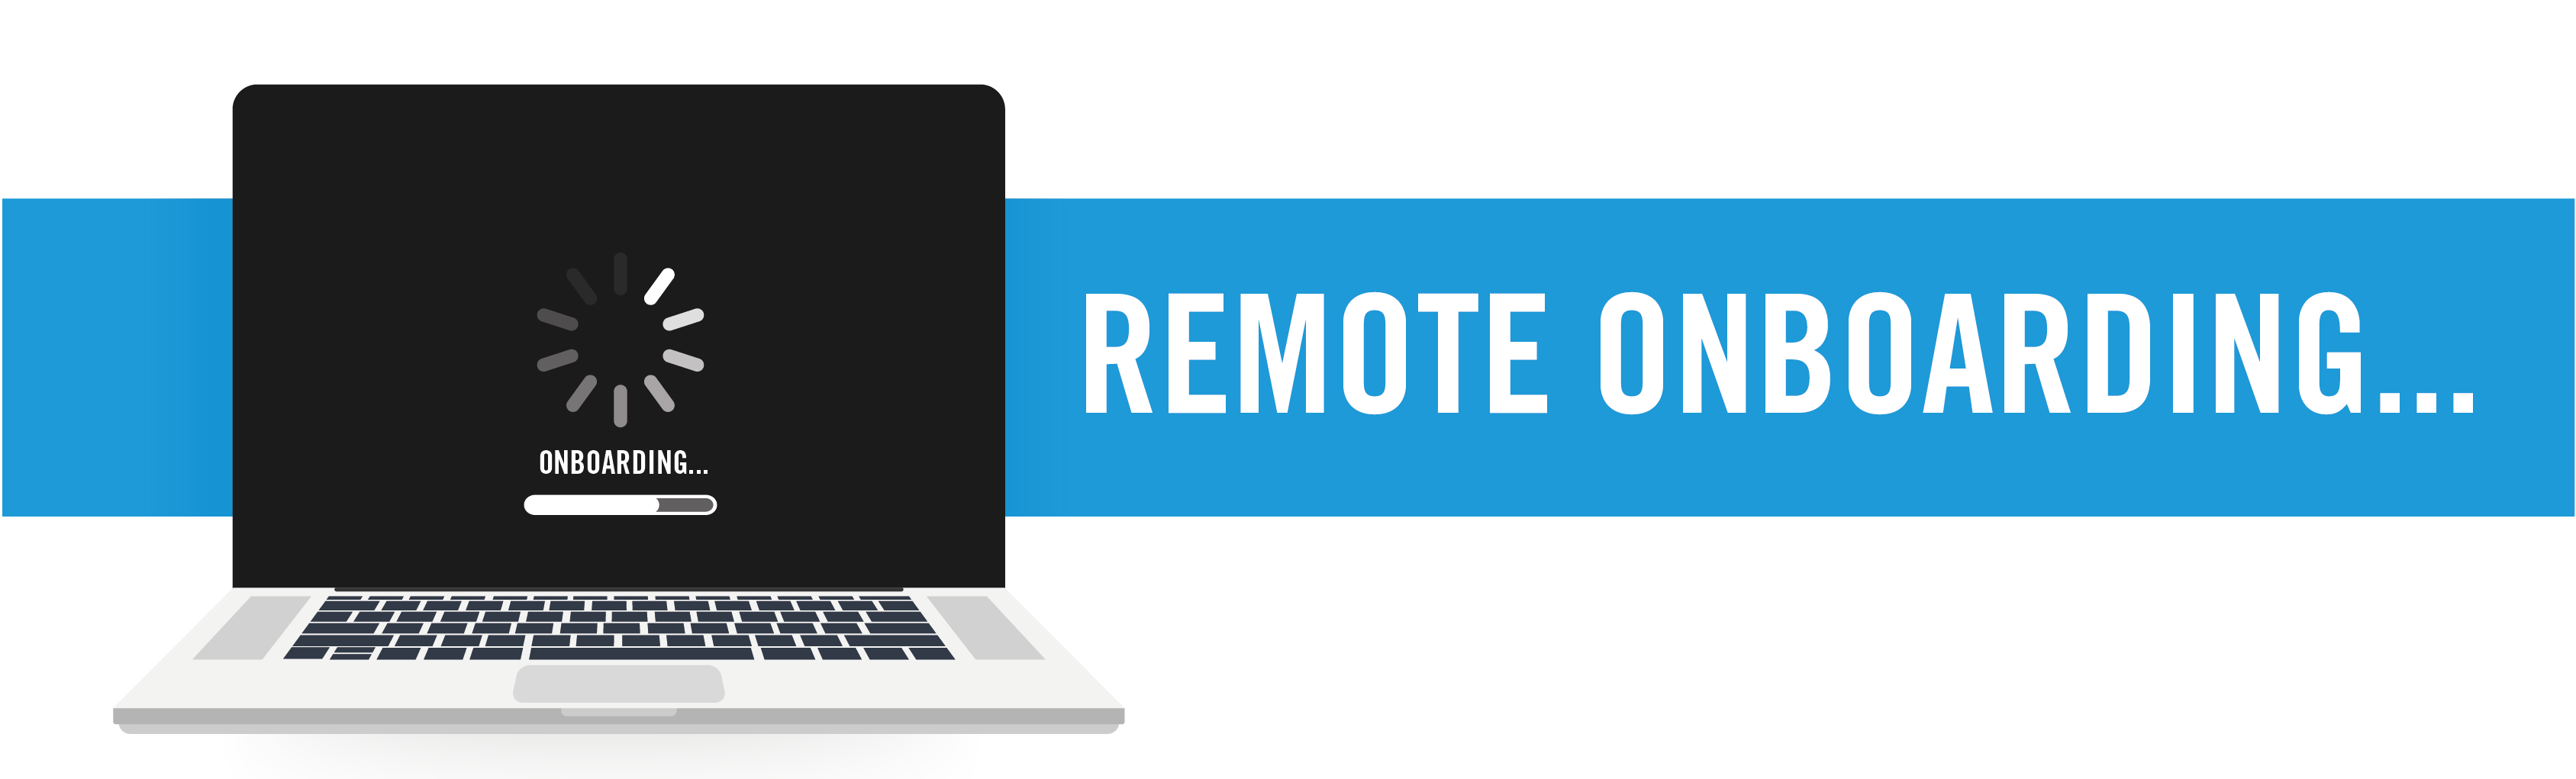 Why Remote Onboarding could be the Future for Employers